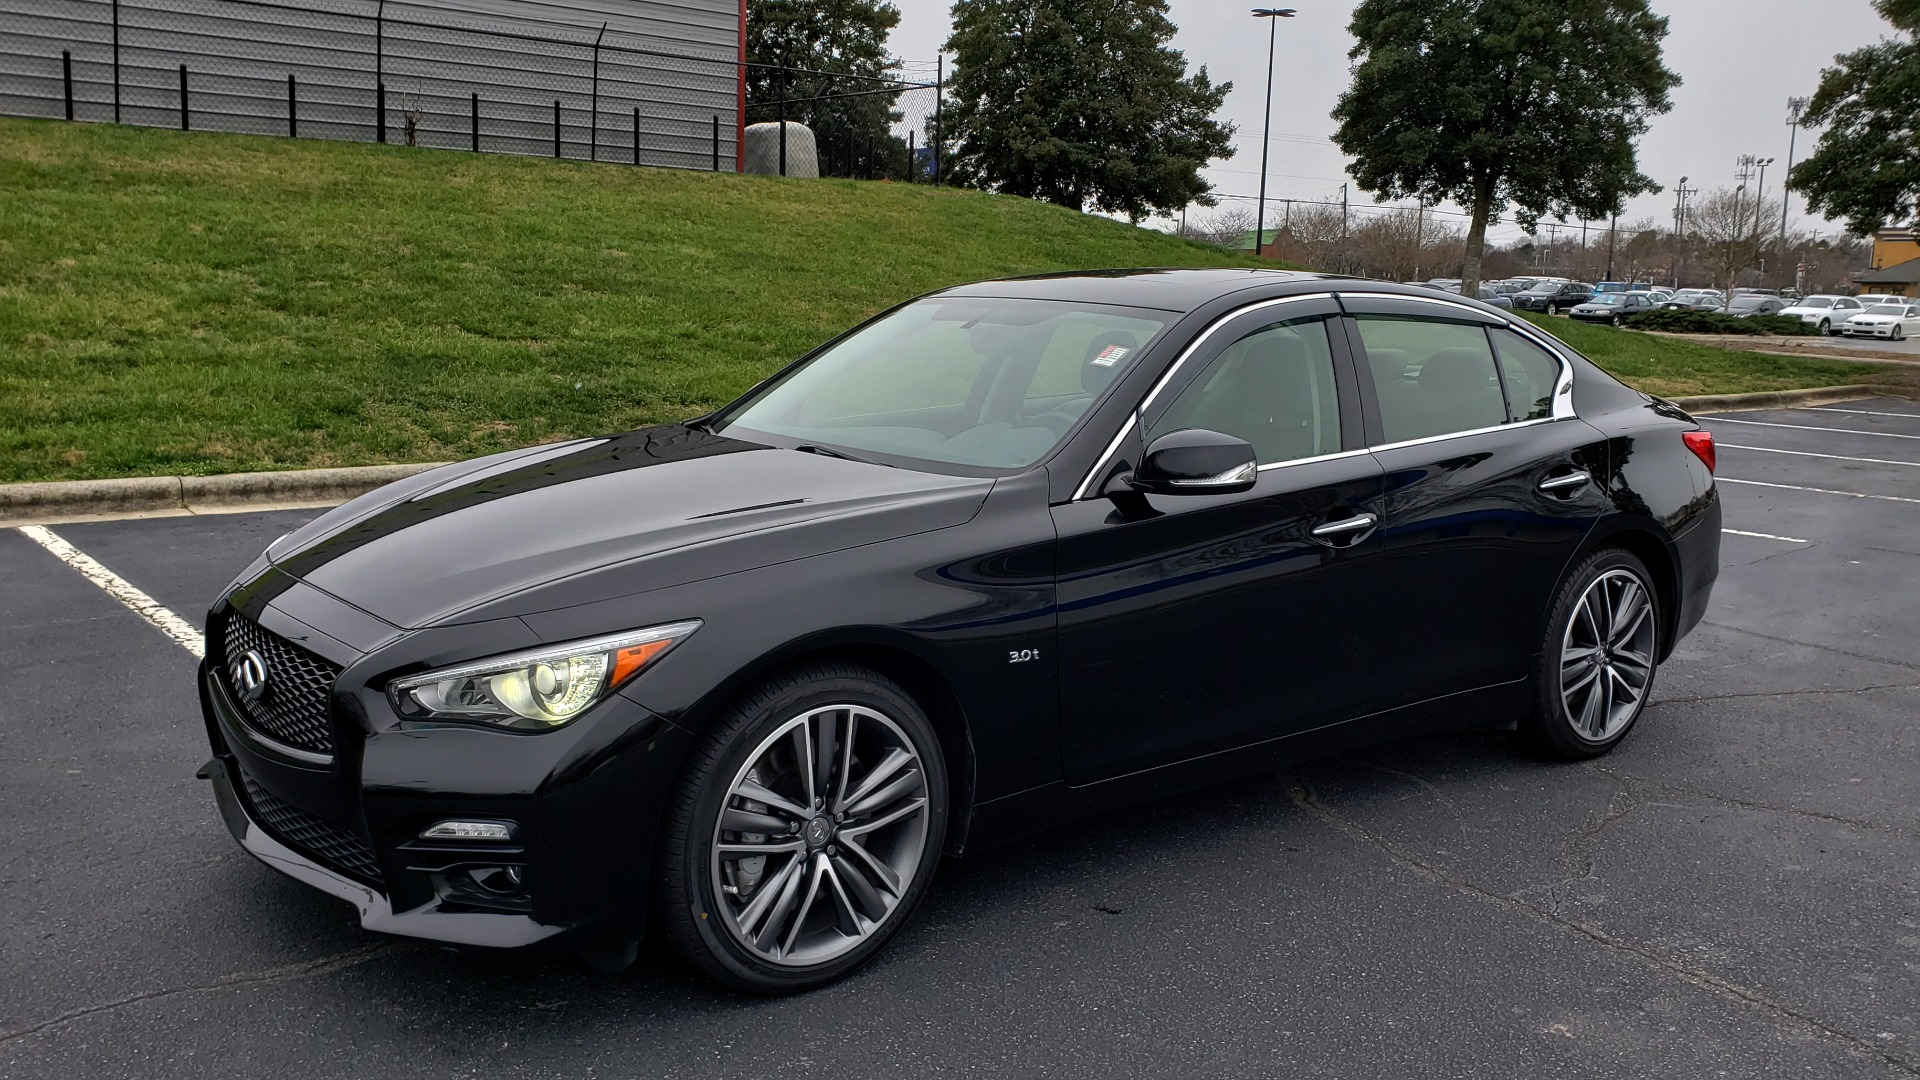 Used 2016 Infiniti Q50 3.0t PREMIUM SPORT AWD / NAV / SUNROOF / HTD STS / REARVIEW for sale Sold at Formula Imports in Charlotte NC 28227 1